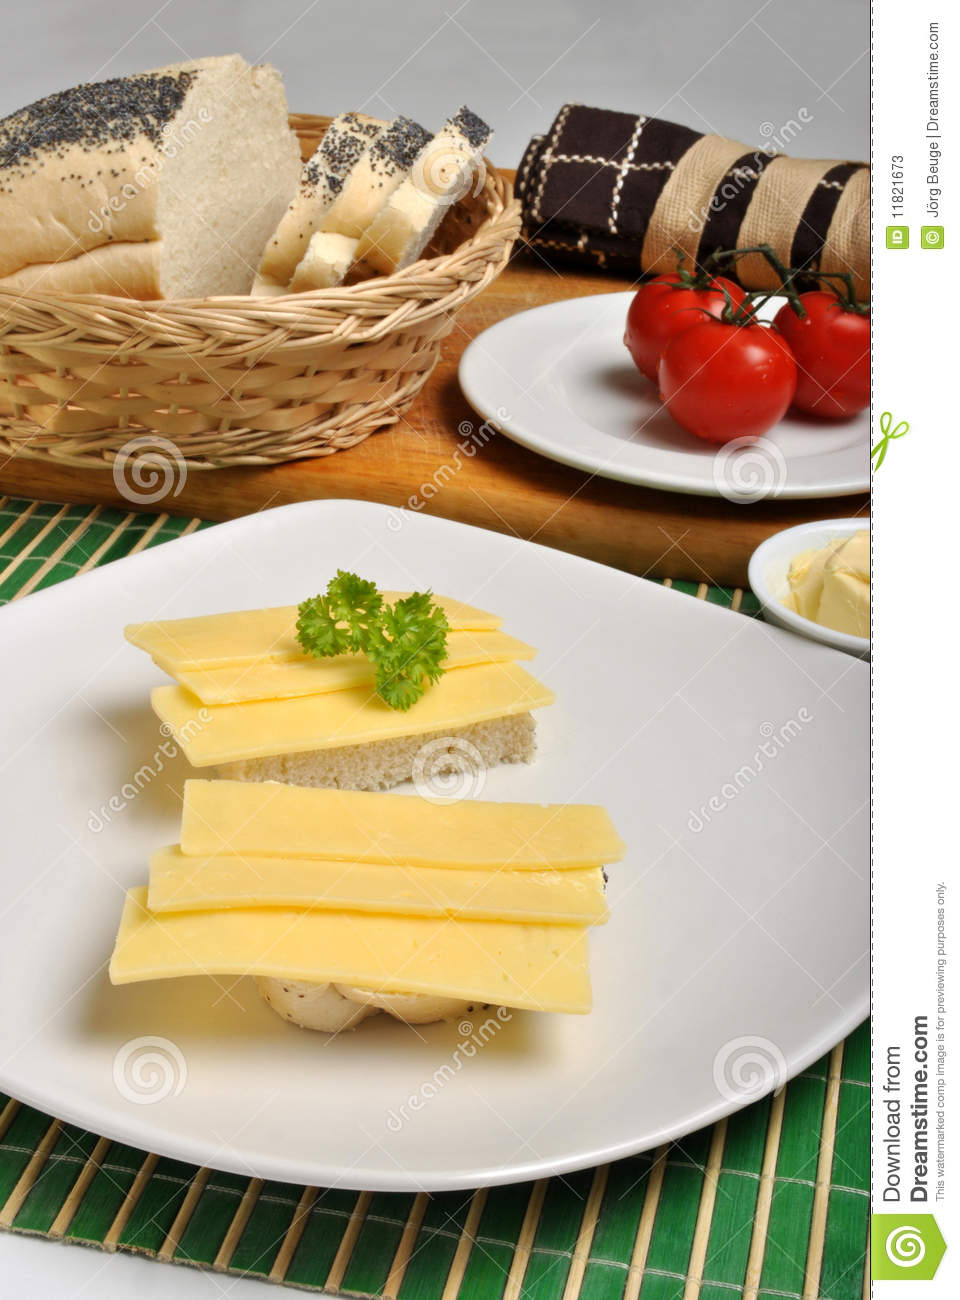 Slice poppy seed bread with cheese